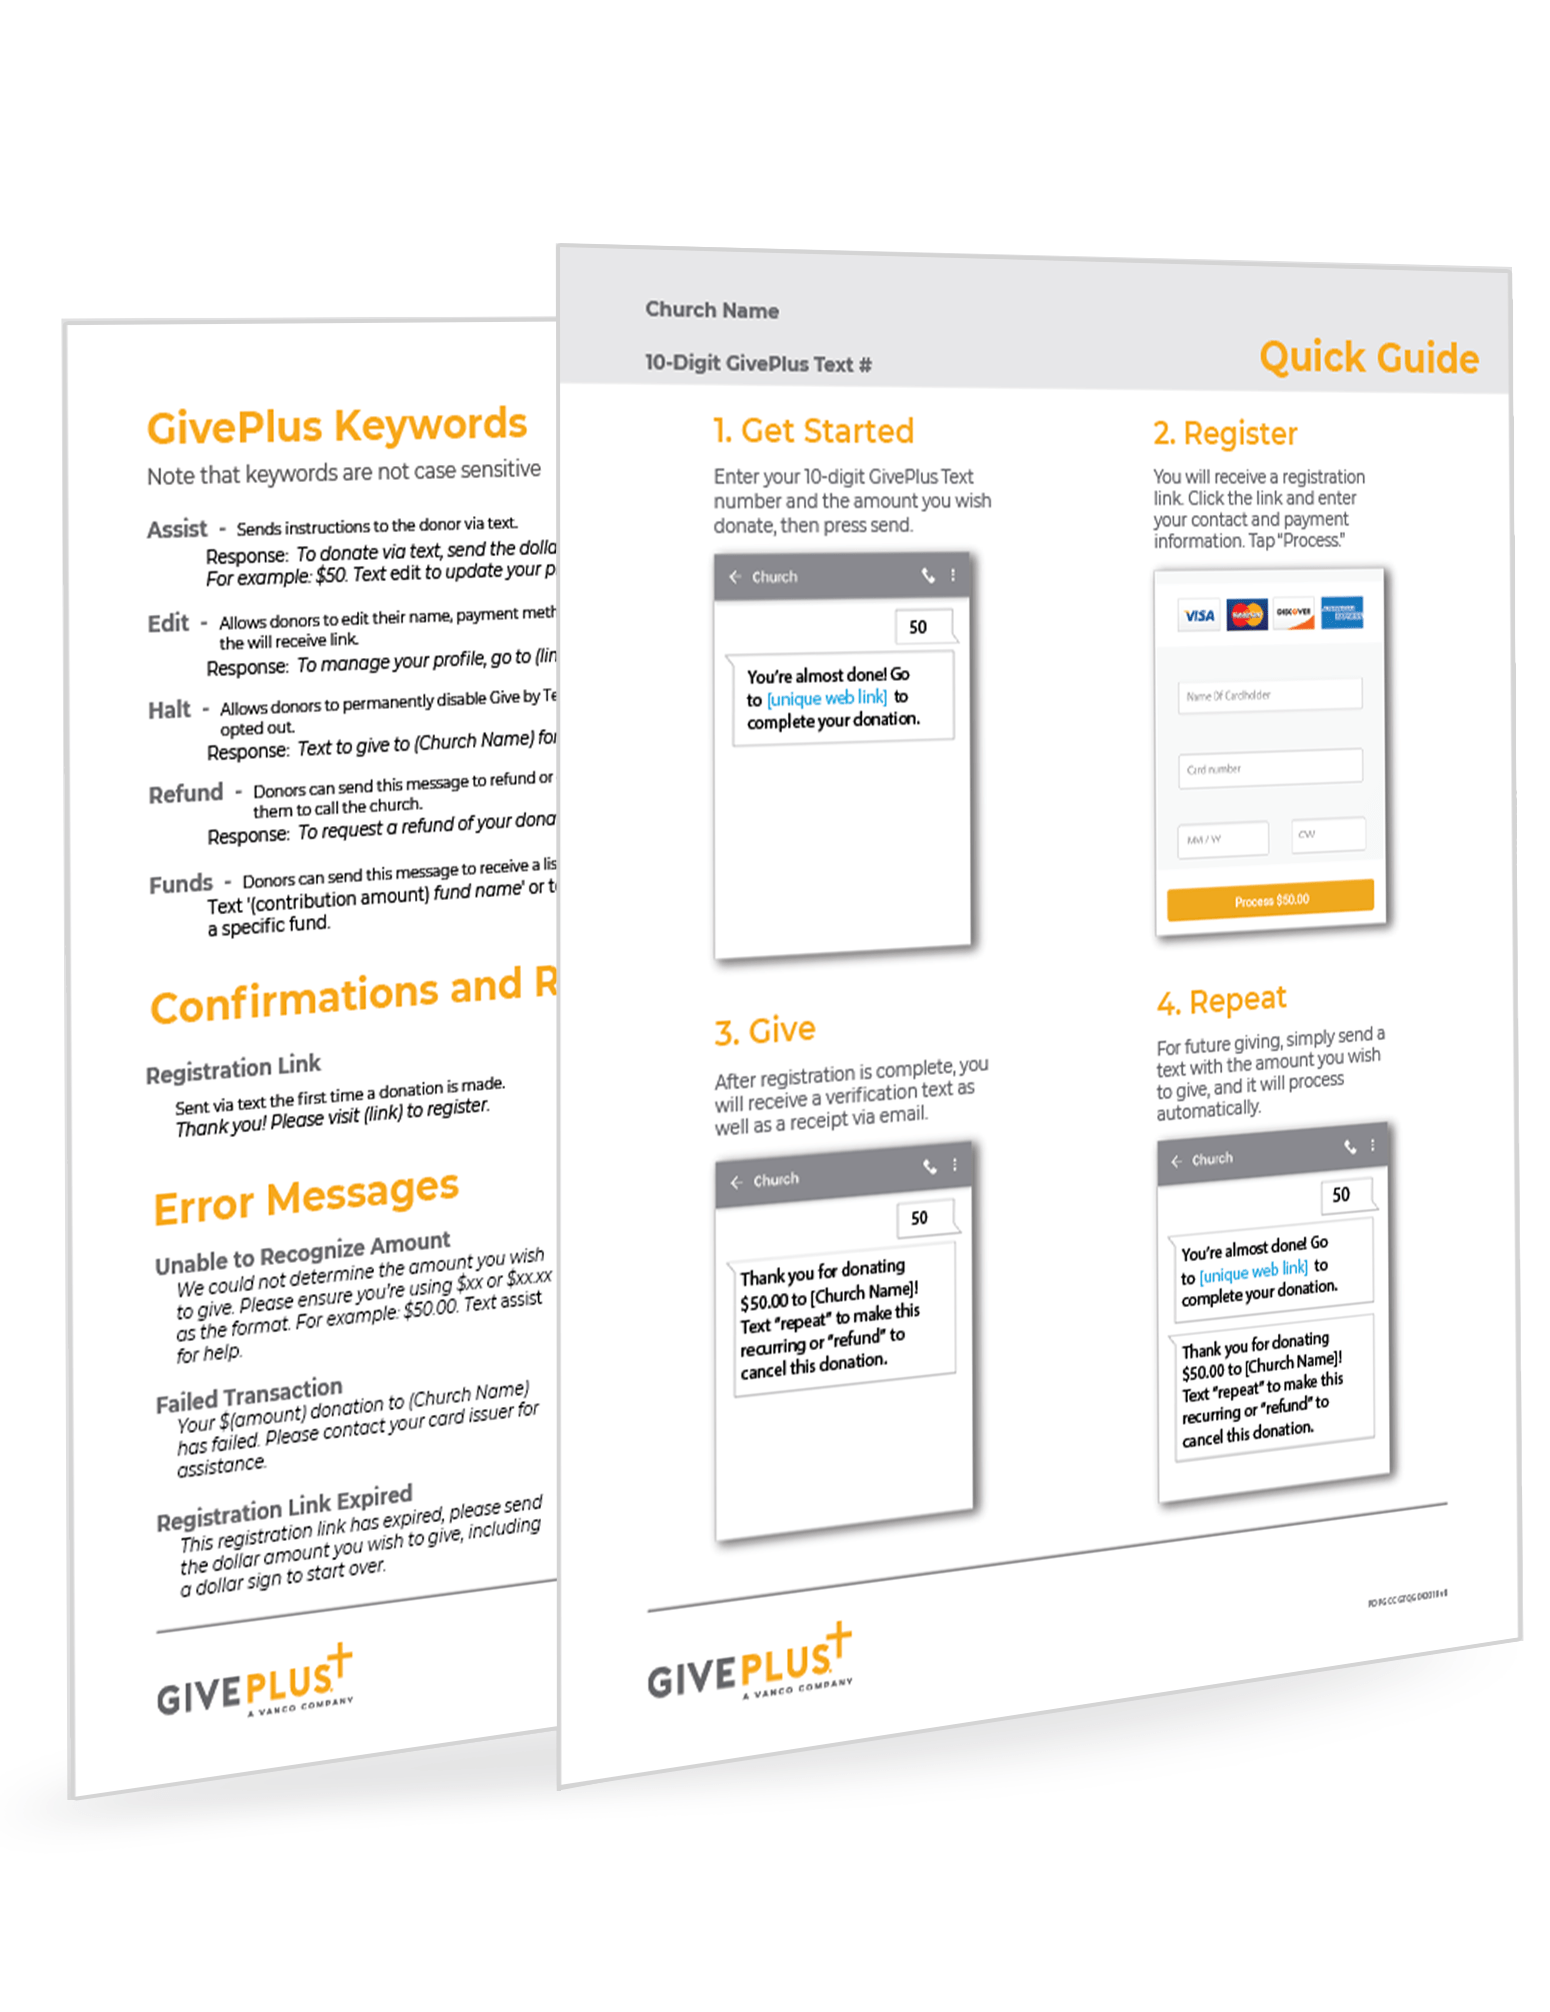 GivePlus Text Quick Guide